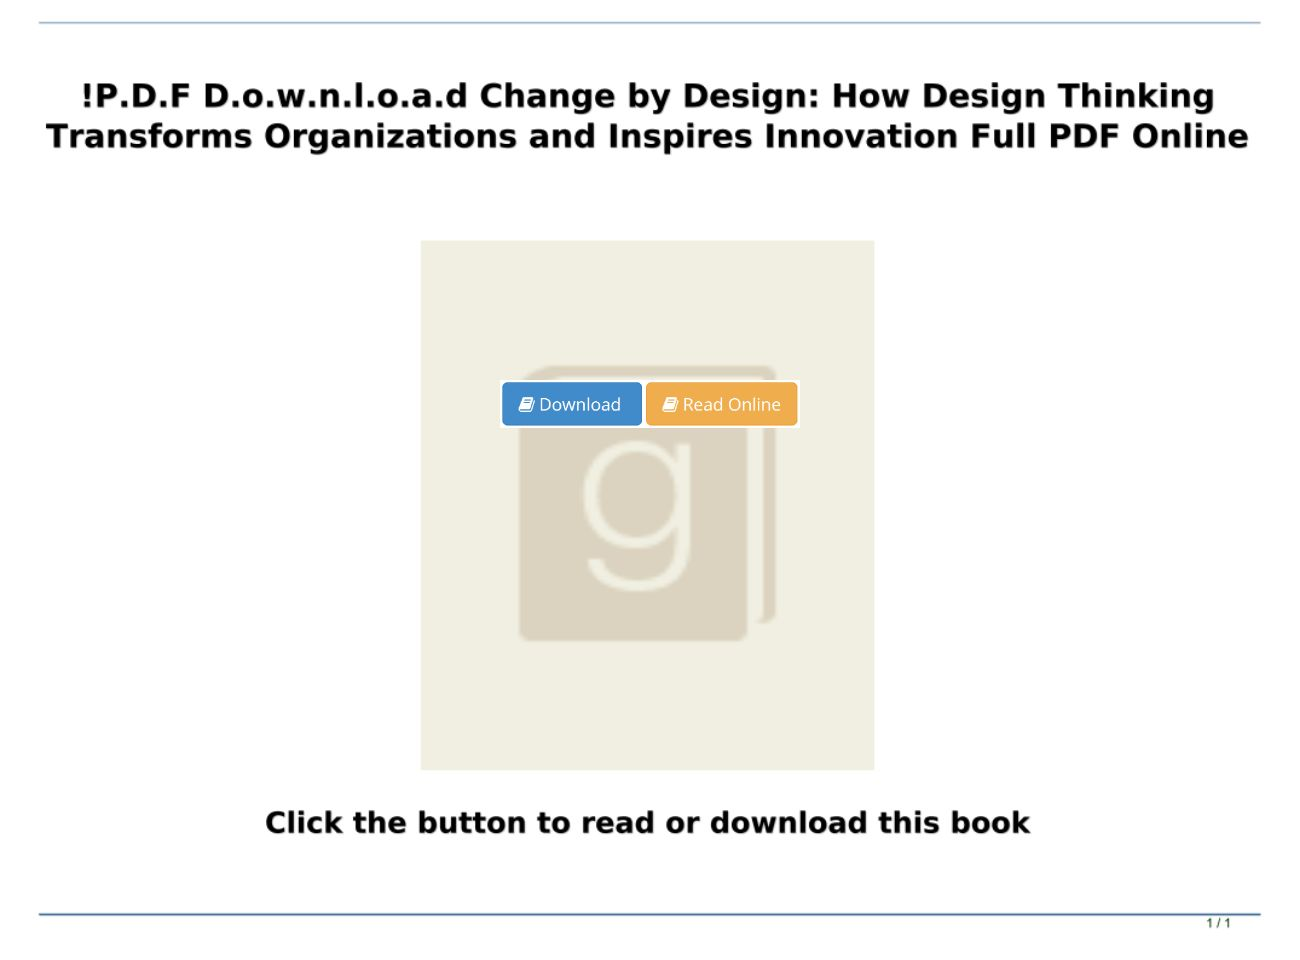 P D F D O W N L O A D Change By Design How Design Thinking Transforms Organizations And Inspires I Text Images Music Video Glogster Edu Interactive Multimedia Posters